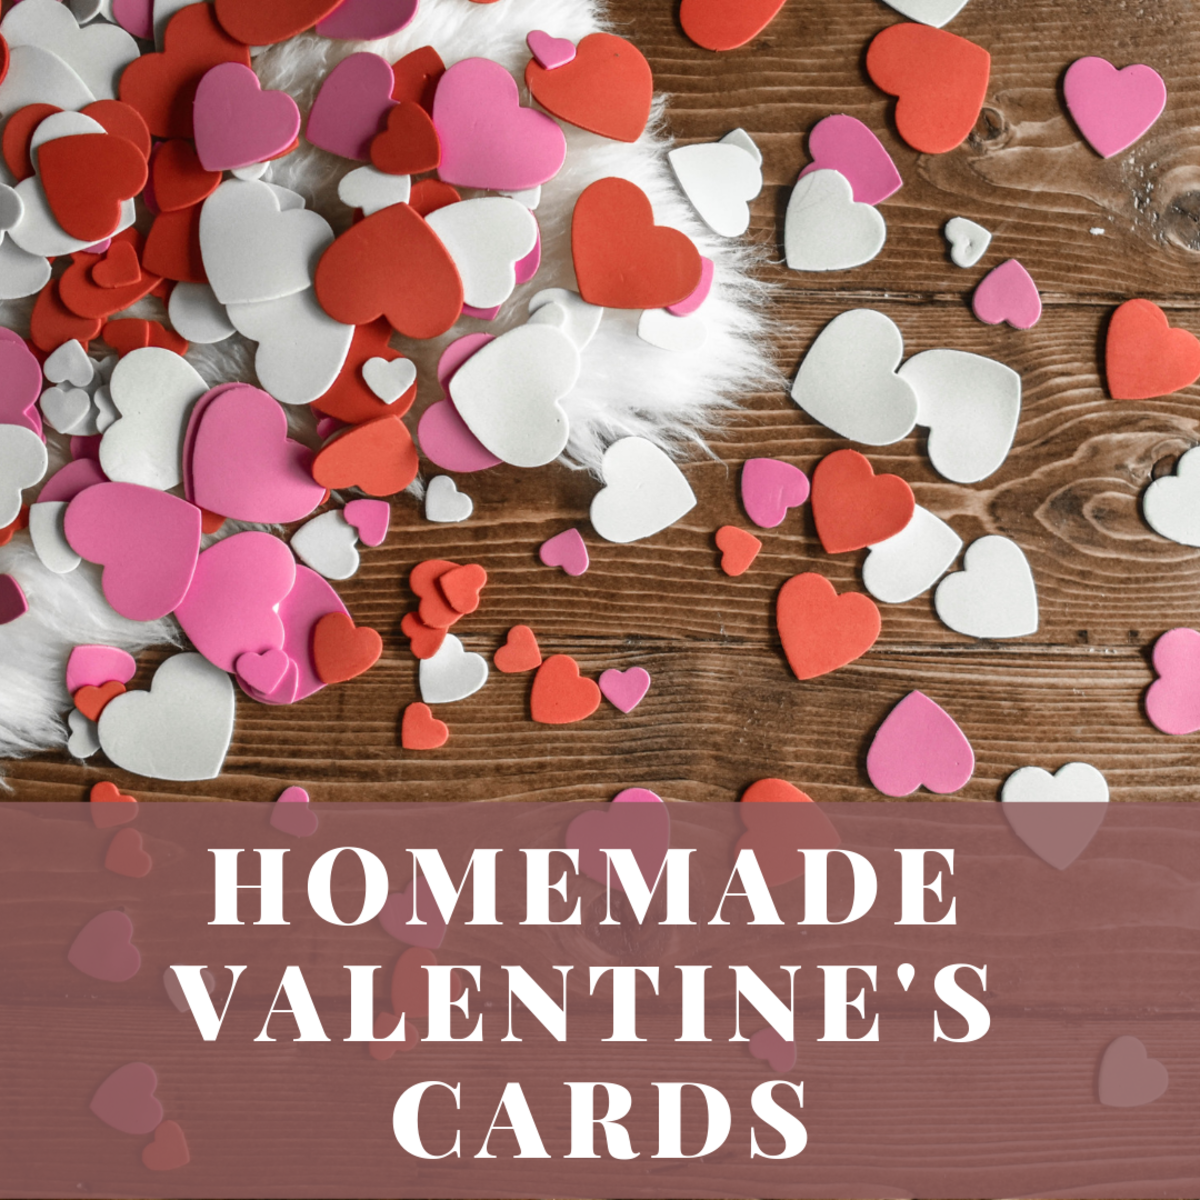 These homemade Valentine's Day cards are fun and easy to make.